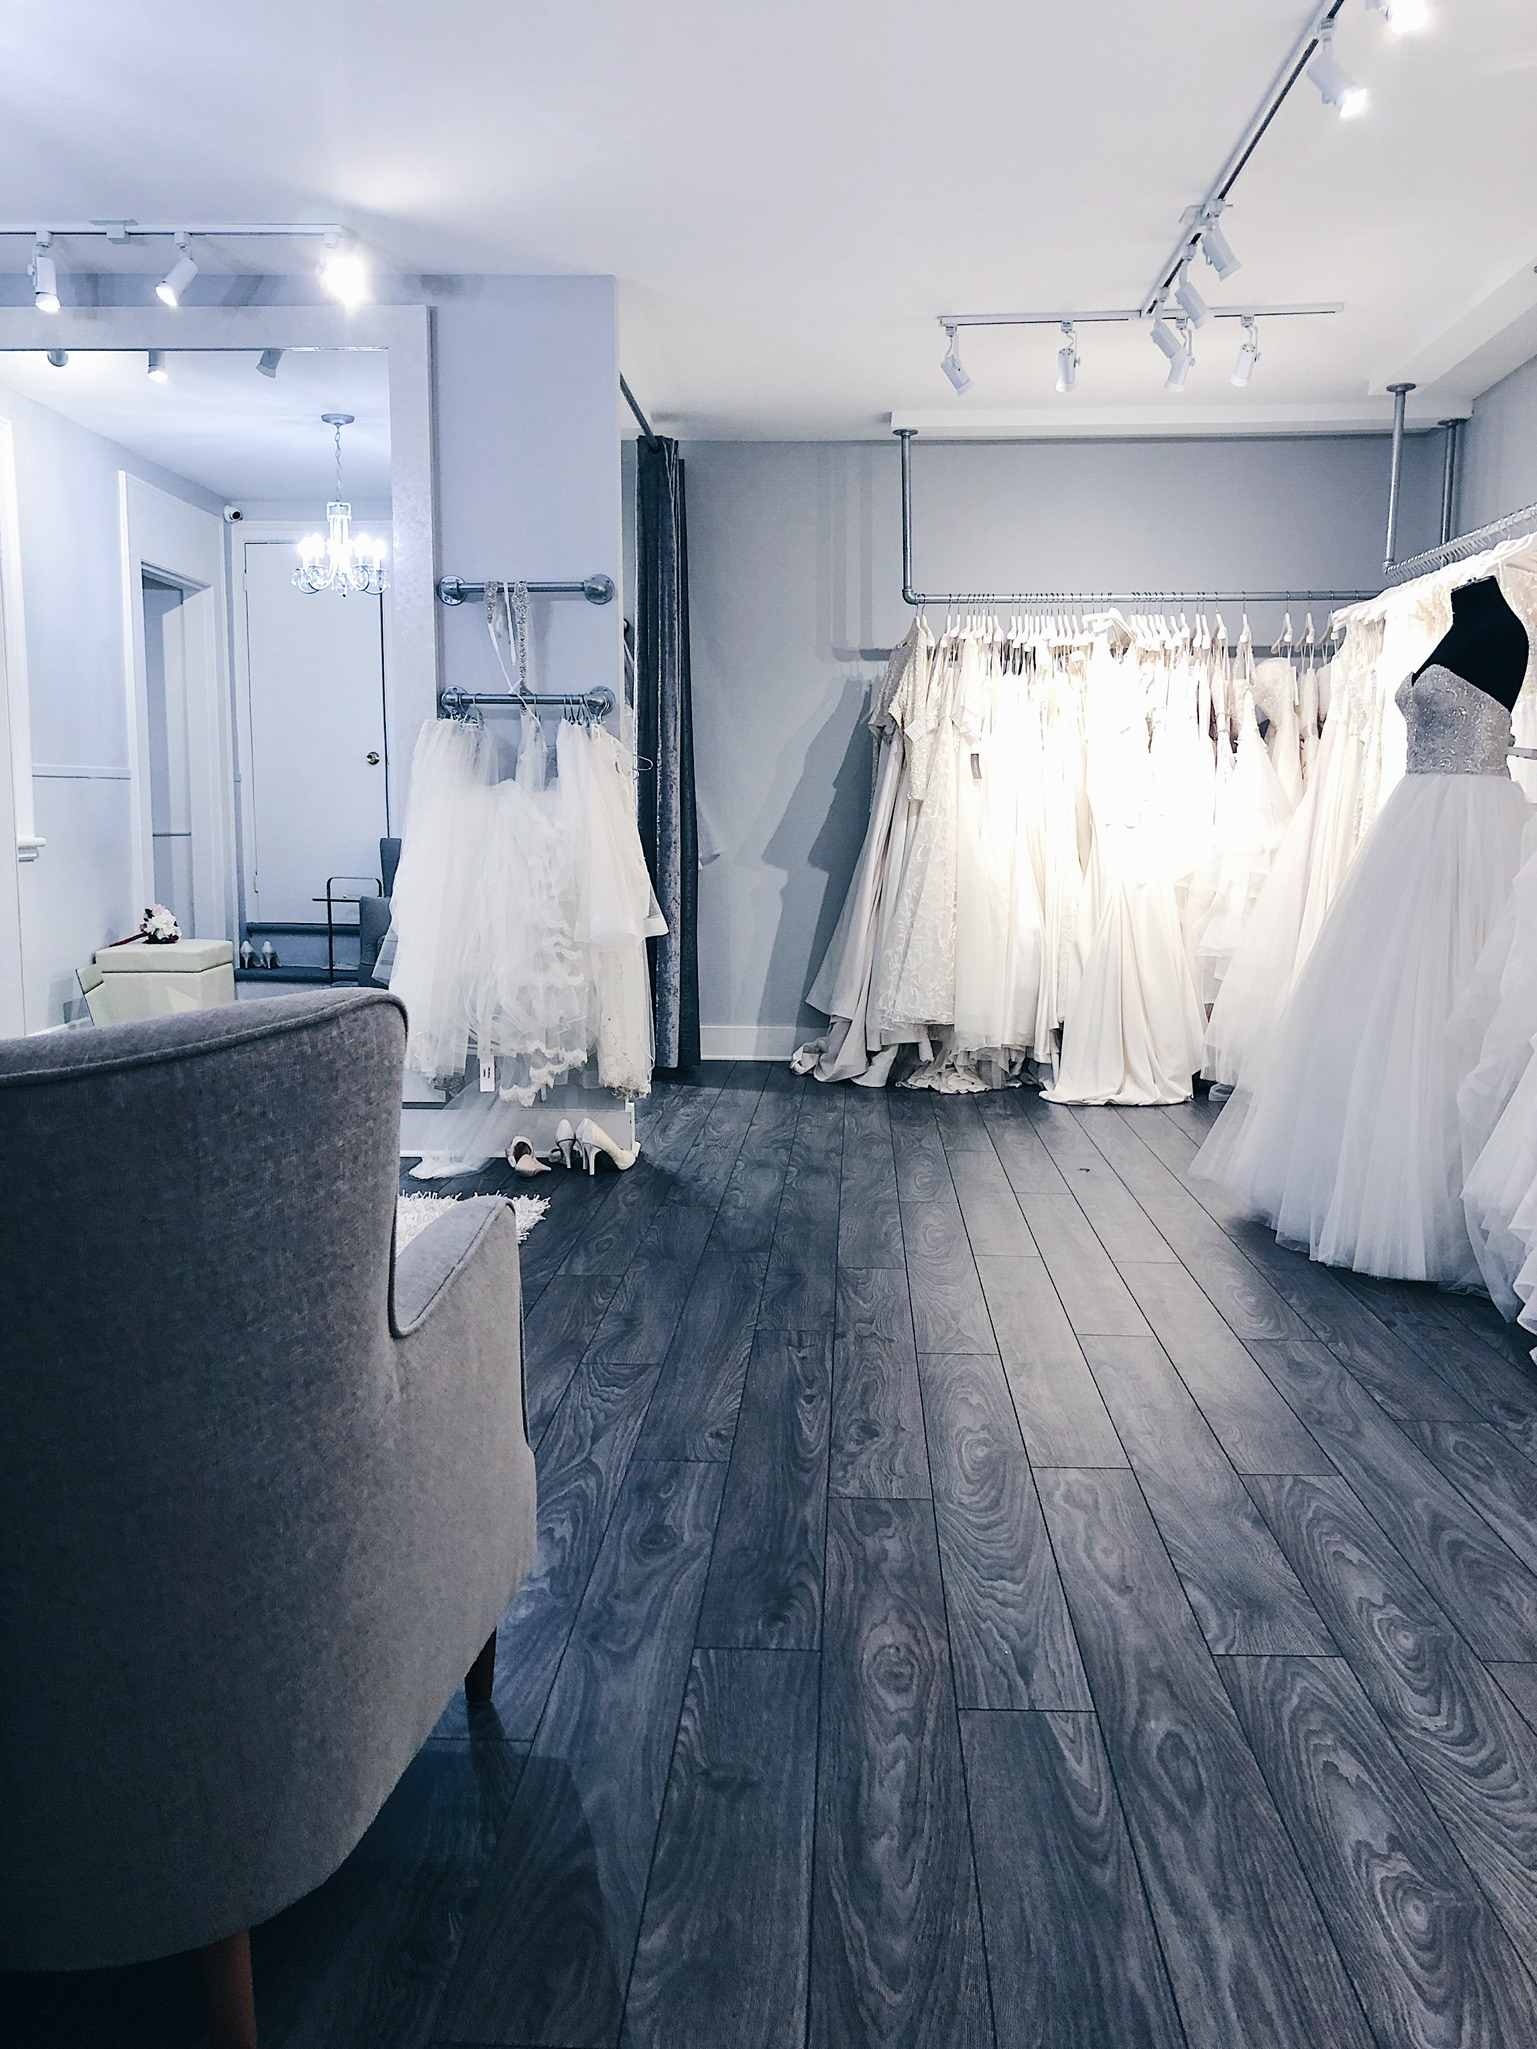 white satin bridal showroom, white satin bridal Ottawa wedding dresses on racks, fitting room